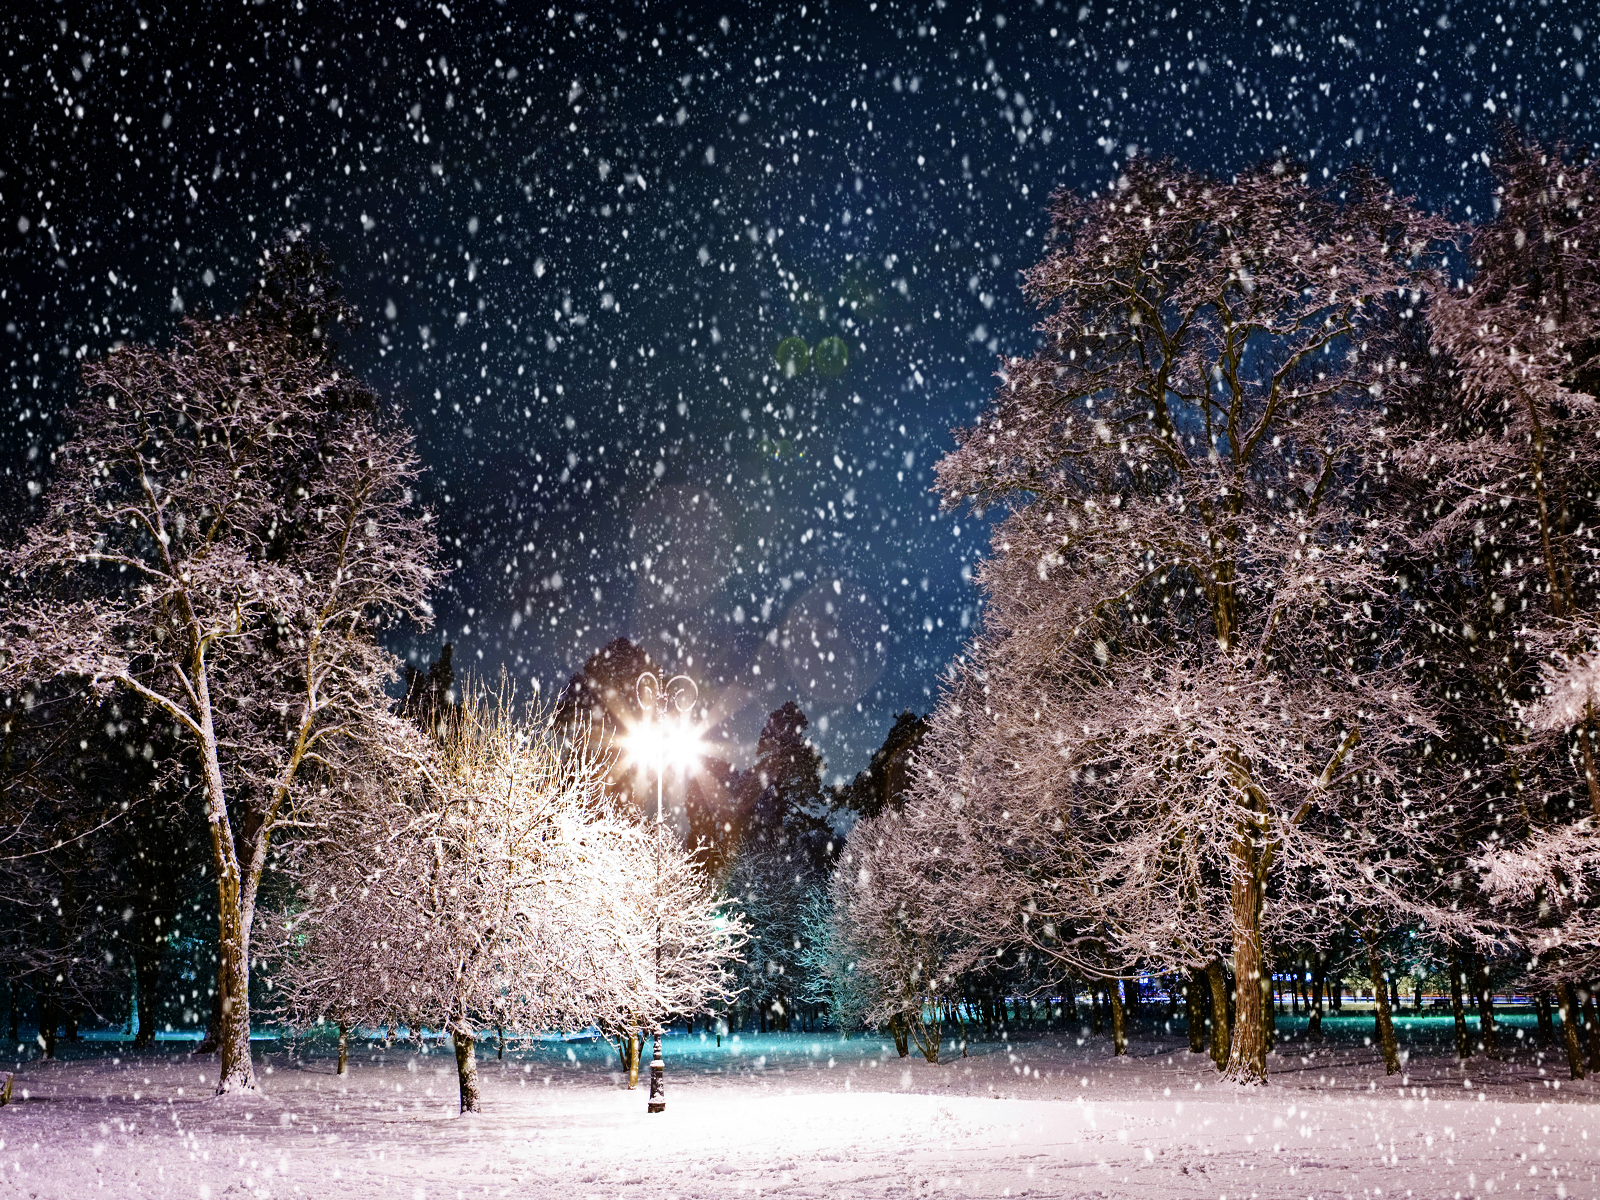 one this snowy winter night wallpaper how cultural myths are